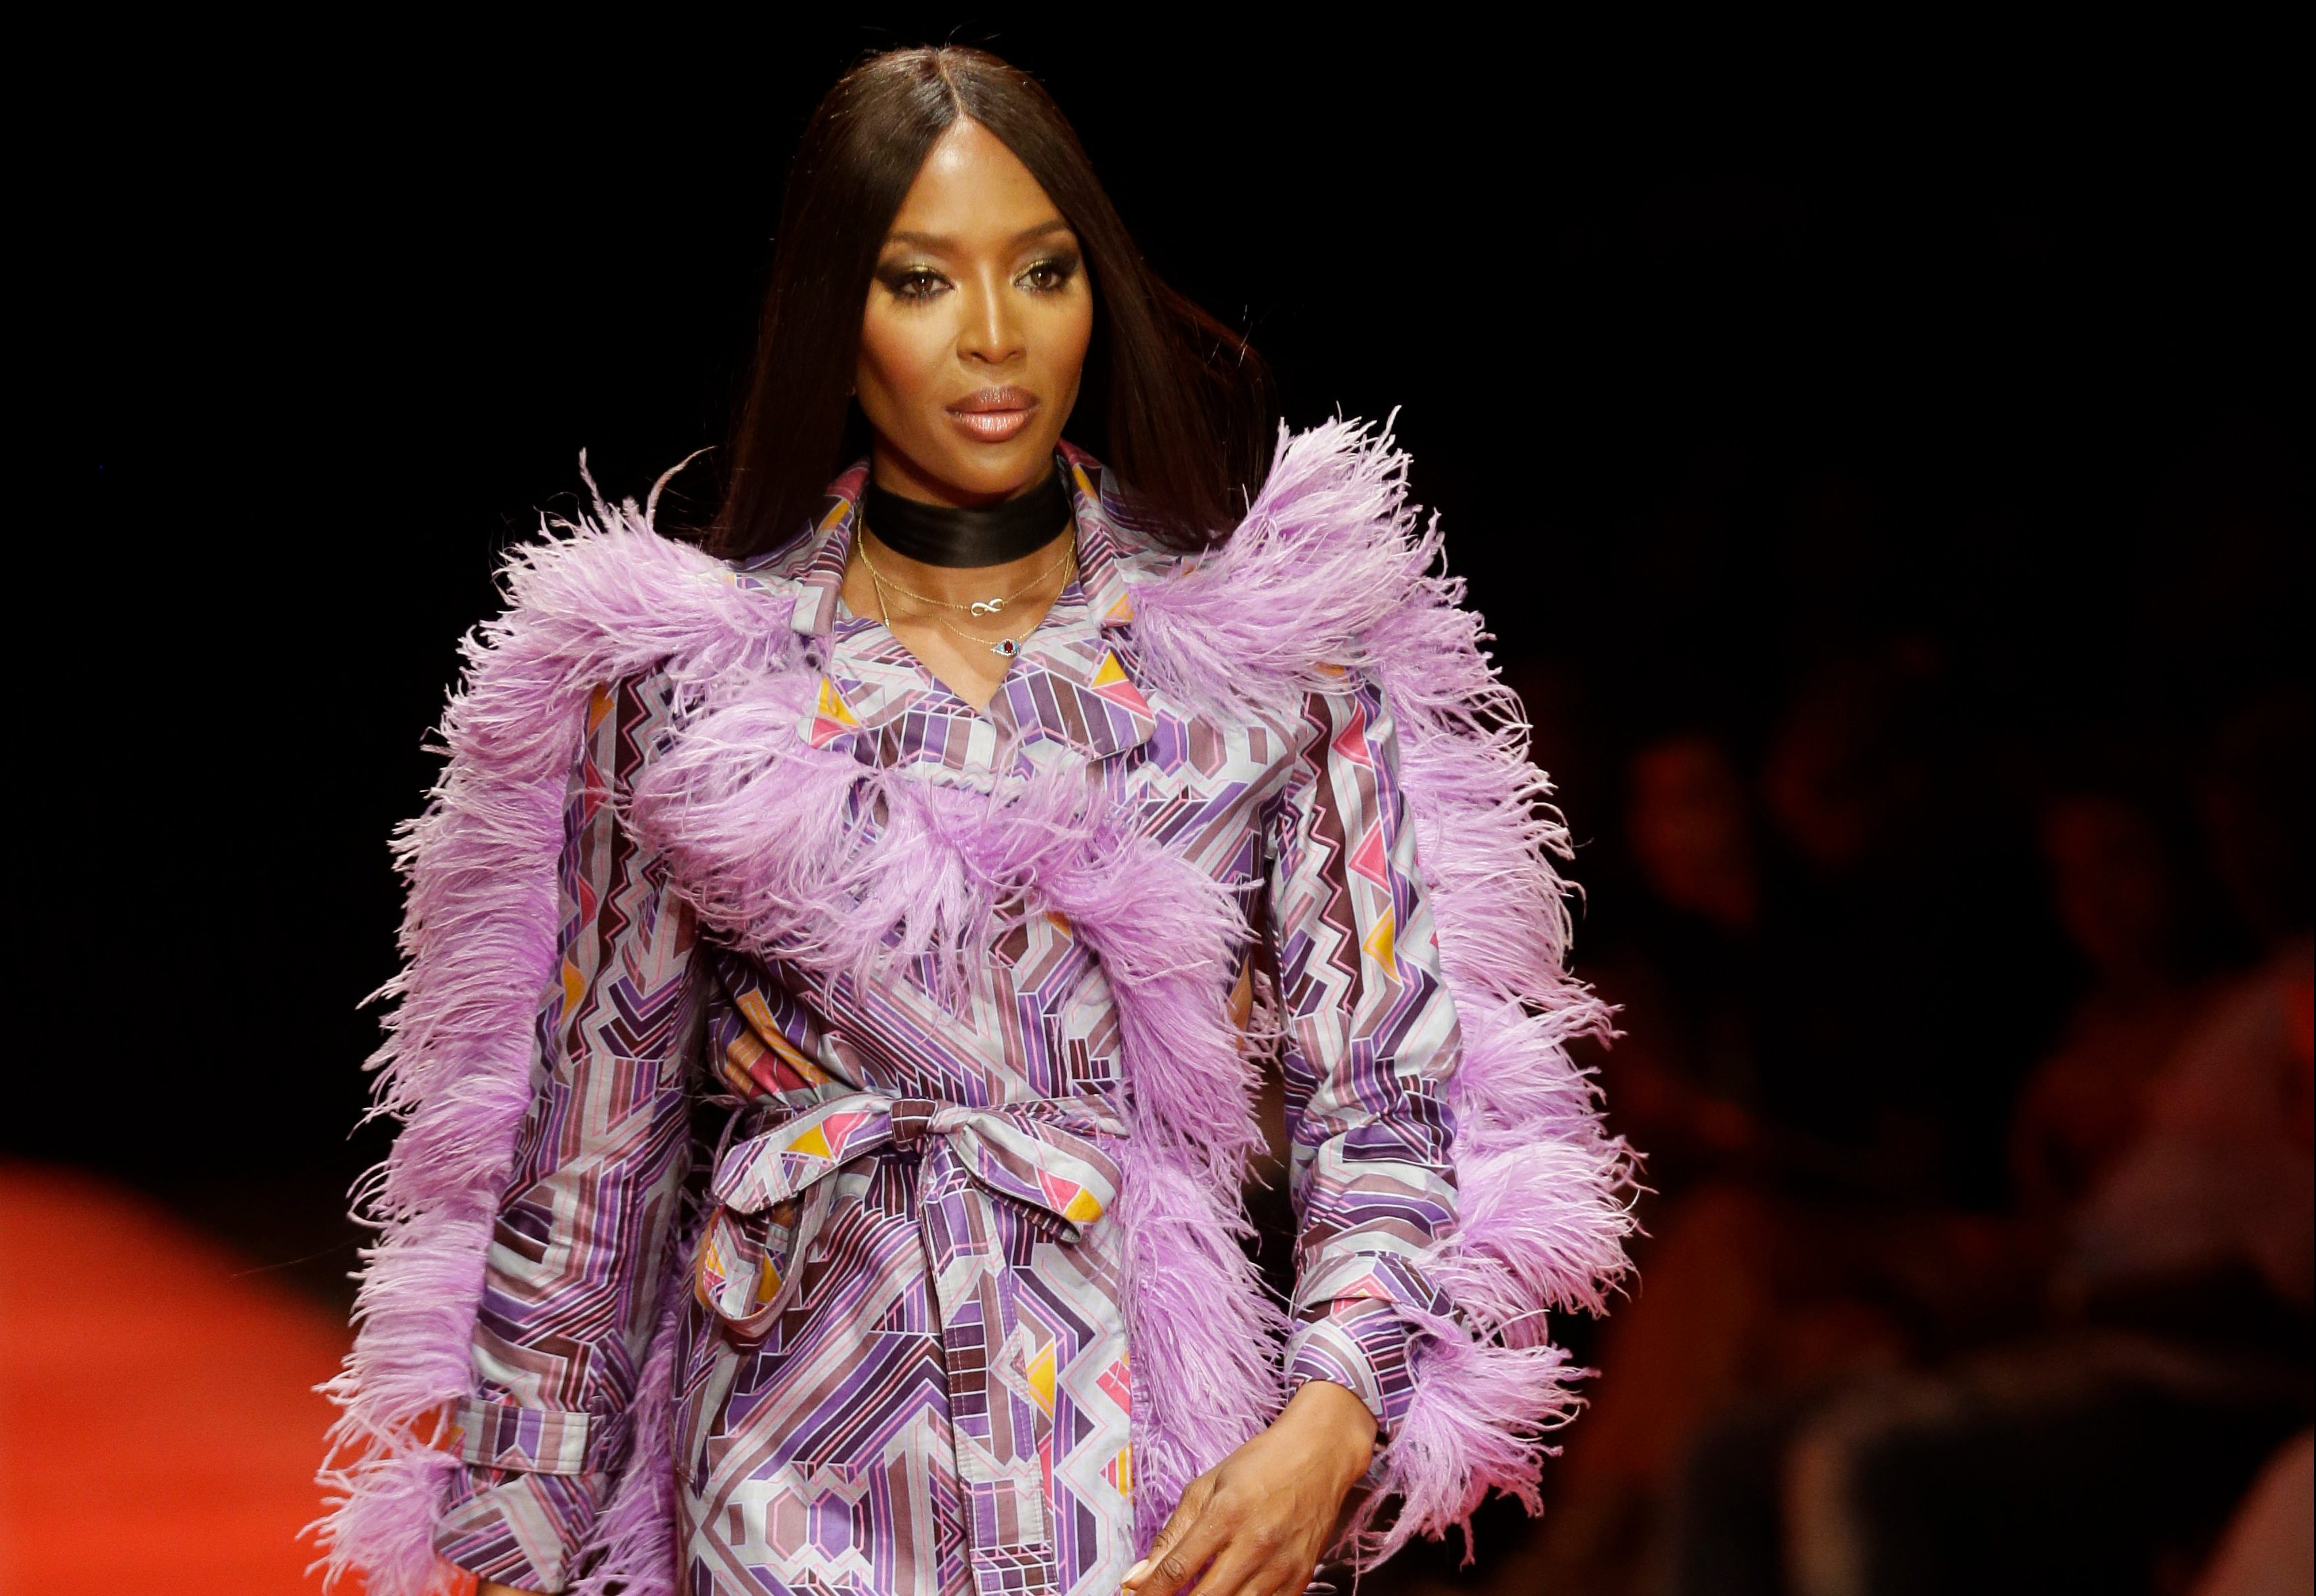 British supermodel Naomi Campbell displays an outfit by South African designer Kluk CGDT during the ARISE Fashion Week event in Lagos, NigeriaFashion, Lagos, Nigeria - 31 Mar 2018